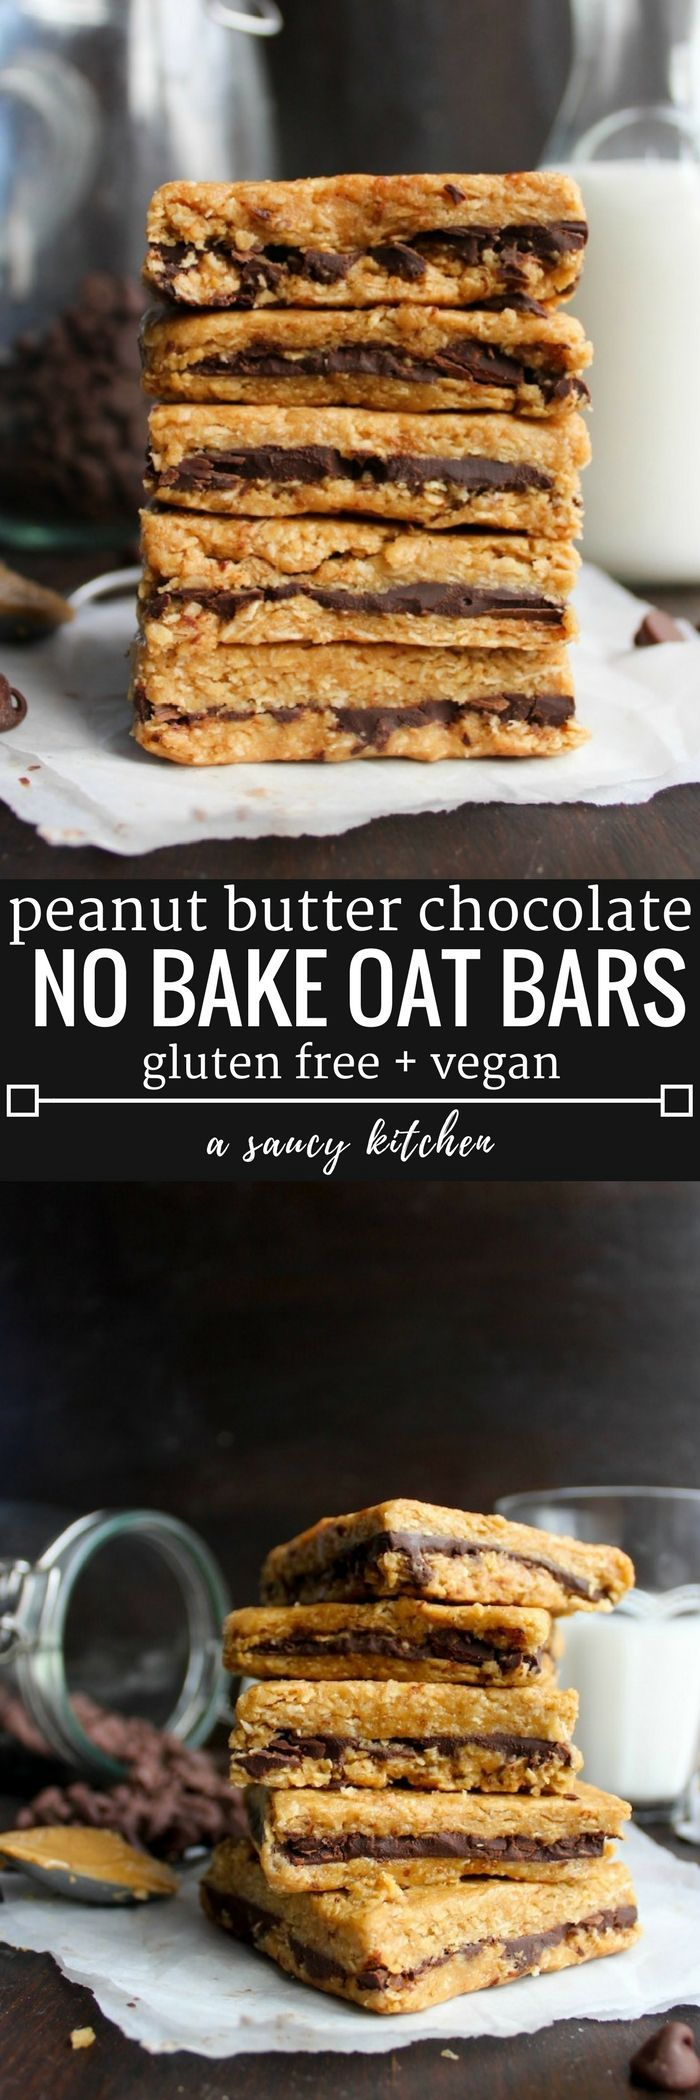 Peanut Butter Chocolate Oat Bars | 4 ingredient + no bake | Gluten Free + Vegan Option